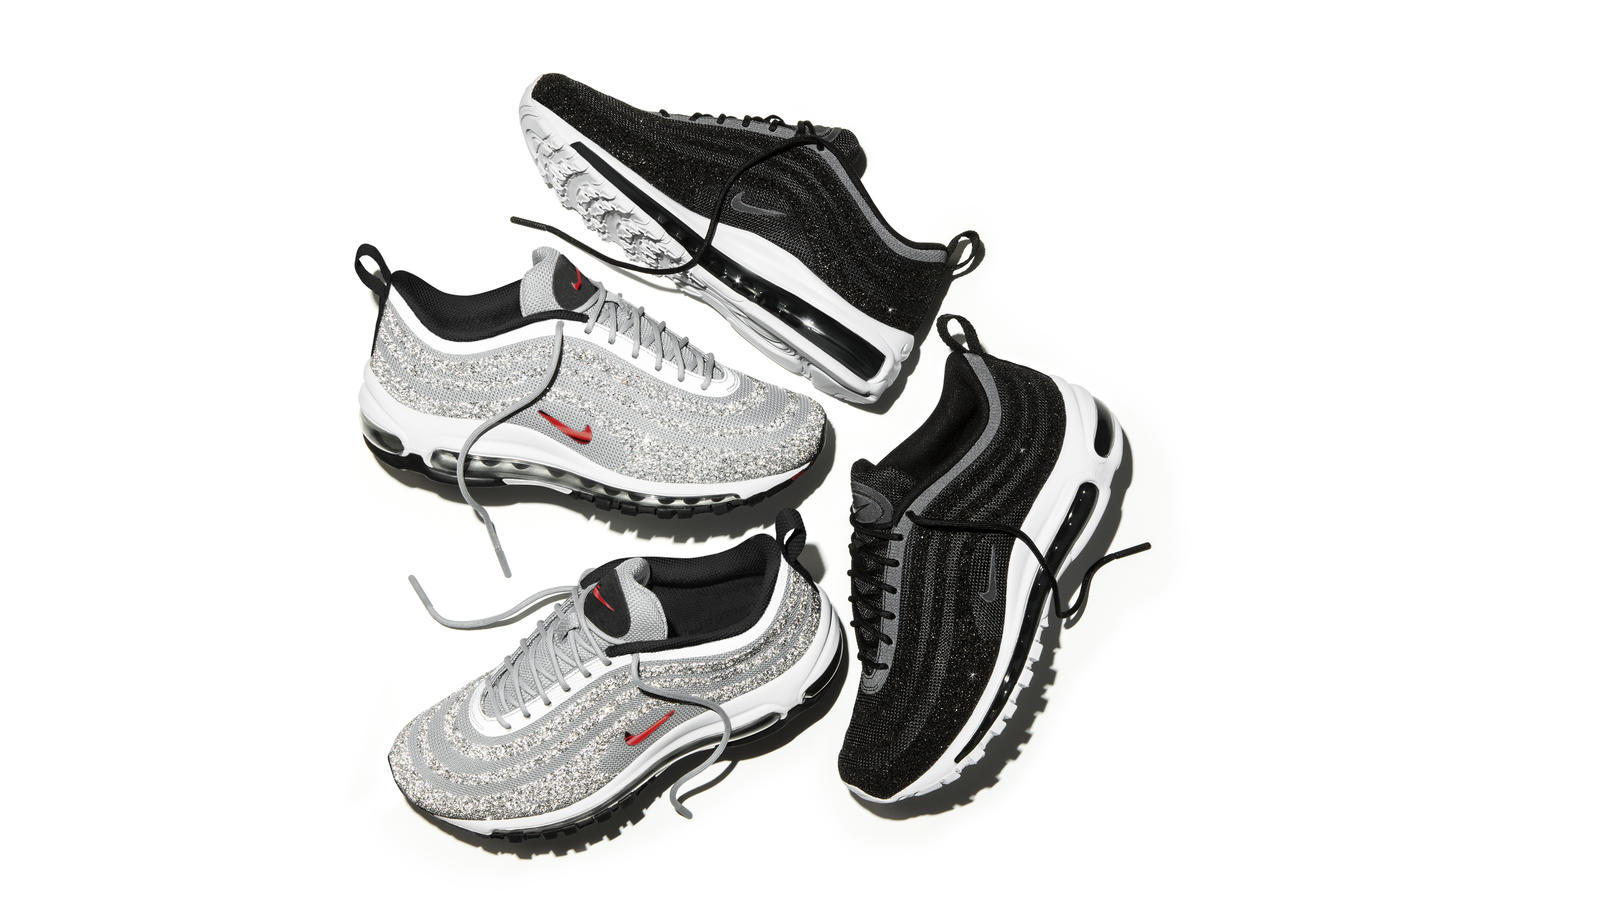 6f4766d7812d Introducing the Nike Air Max 97 LX